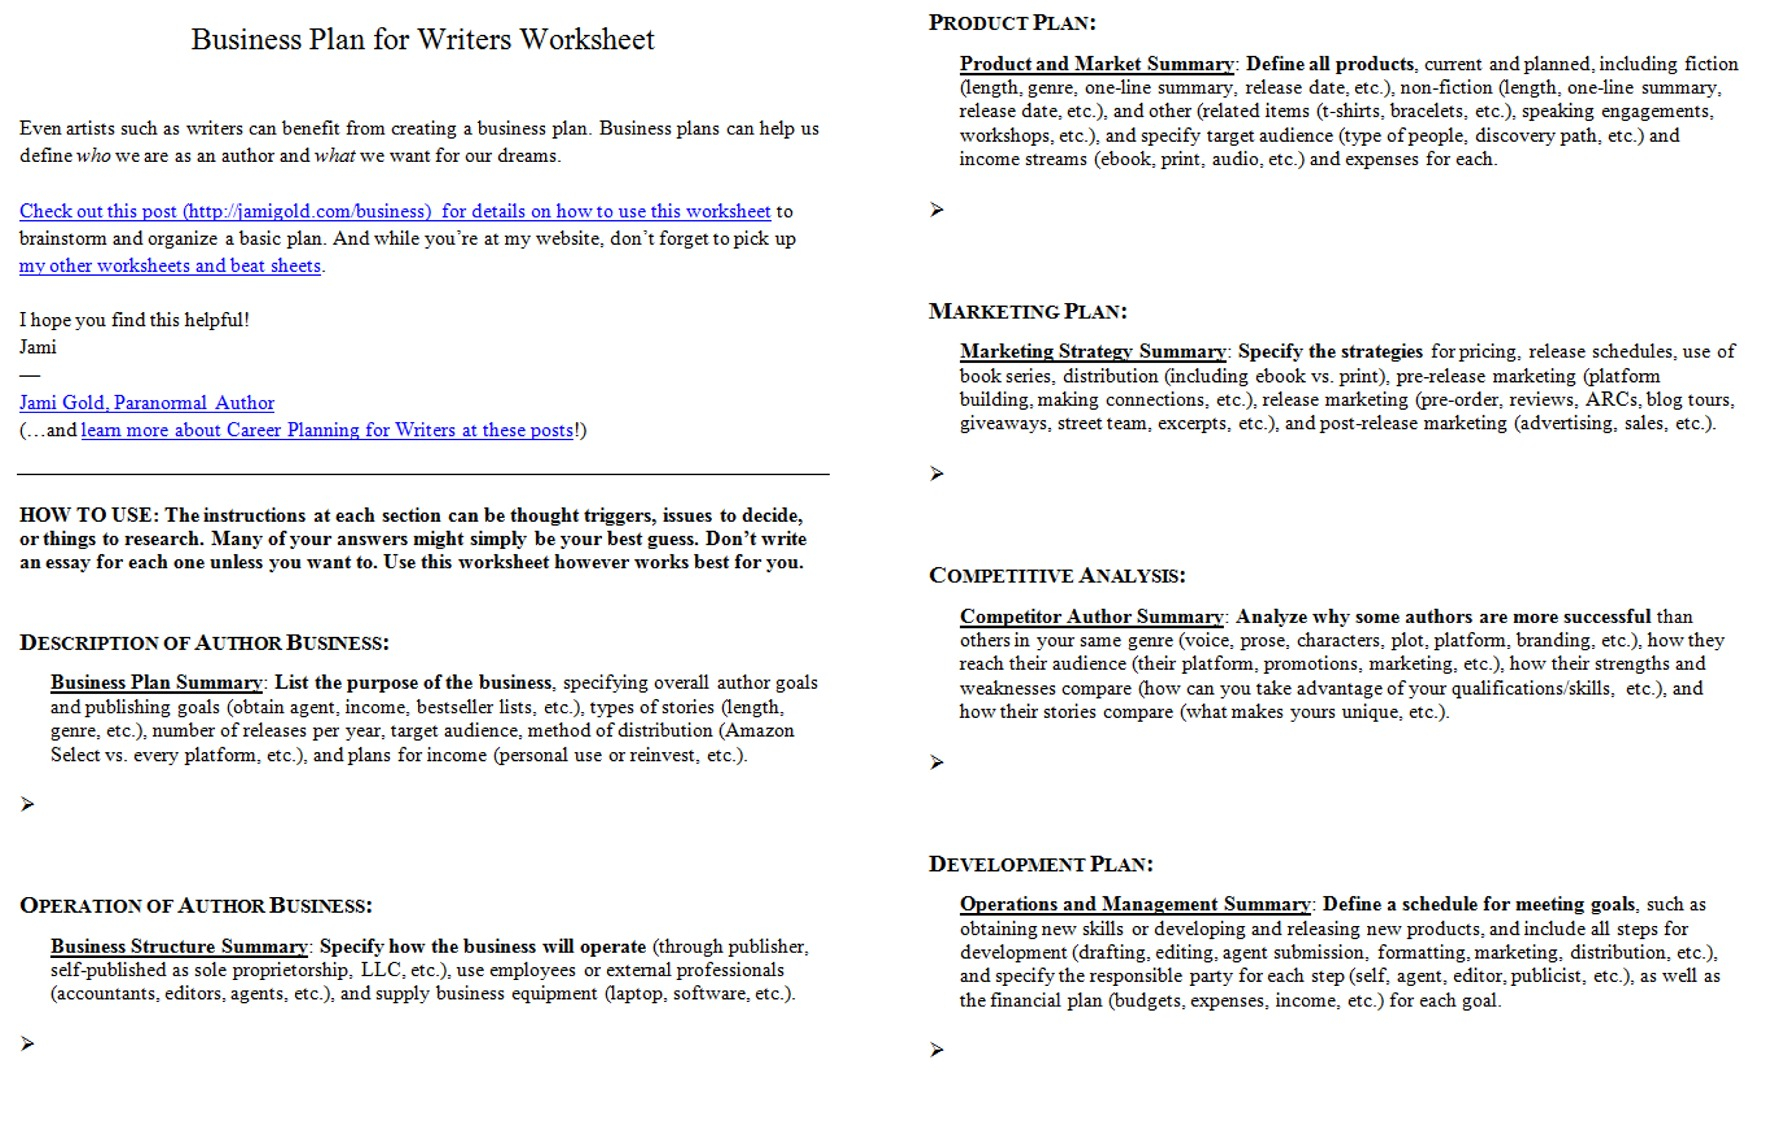 Proatmealus  Fascinating Worksheets For Writers  Jami Gold Paranormal Author With Outstanding Screen Shot Of Both Pages Of The Business Plan For Writers Worksheet With Adorable Linear And Nonlinear Equations Worksheet Also Times Math Worksheets In Addition Grade  Maths Worksheets Pdf And  Digit Math Worksheets As Well As Amelia Earhart Worksheet Additionally Itemized Tax Deduction Worksheet From Jamigoldcom With Proatmealus  Outstanding Worksheets For Writers  Jami Gold Paranormal Author With Adorable Screen Shot Of Both Pages Of The Business Plan For Writers Worksheet And Fascinating Linear And Nonlinear Equations Worksheet Also Times Math Worksheets In Addition Grade  Maths Worksheets Pdf From Jamigoldcom